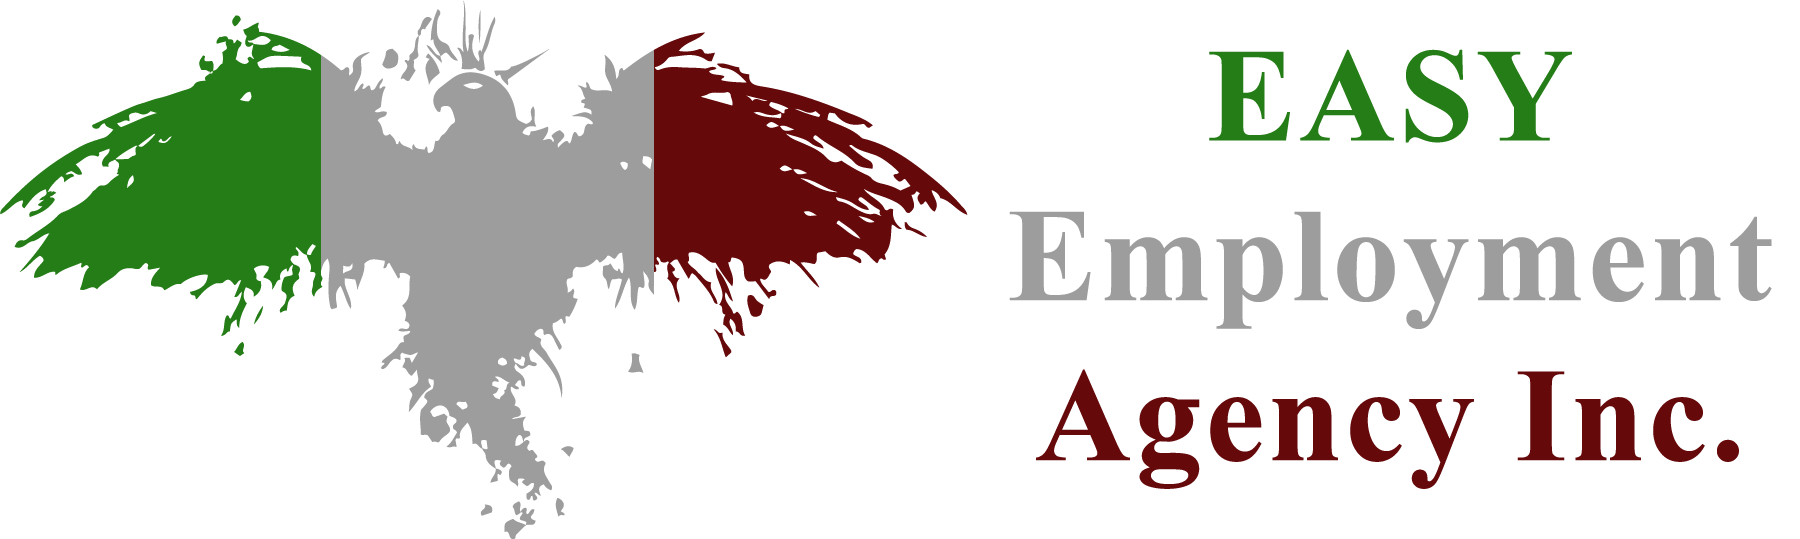 Easy Employment Agency inc.